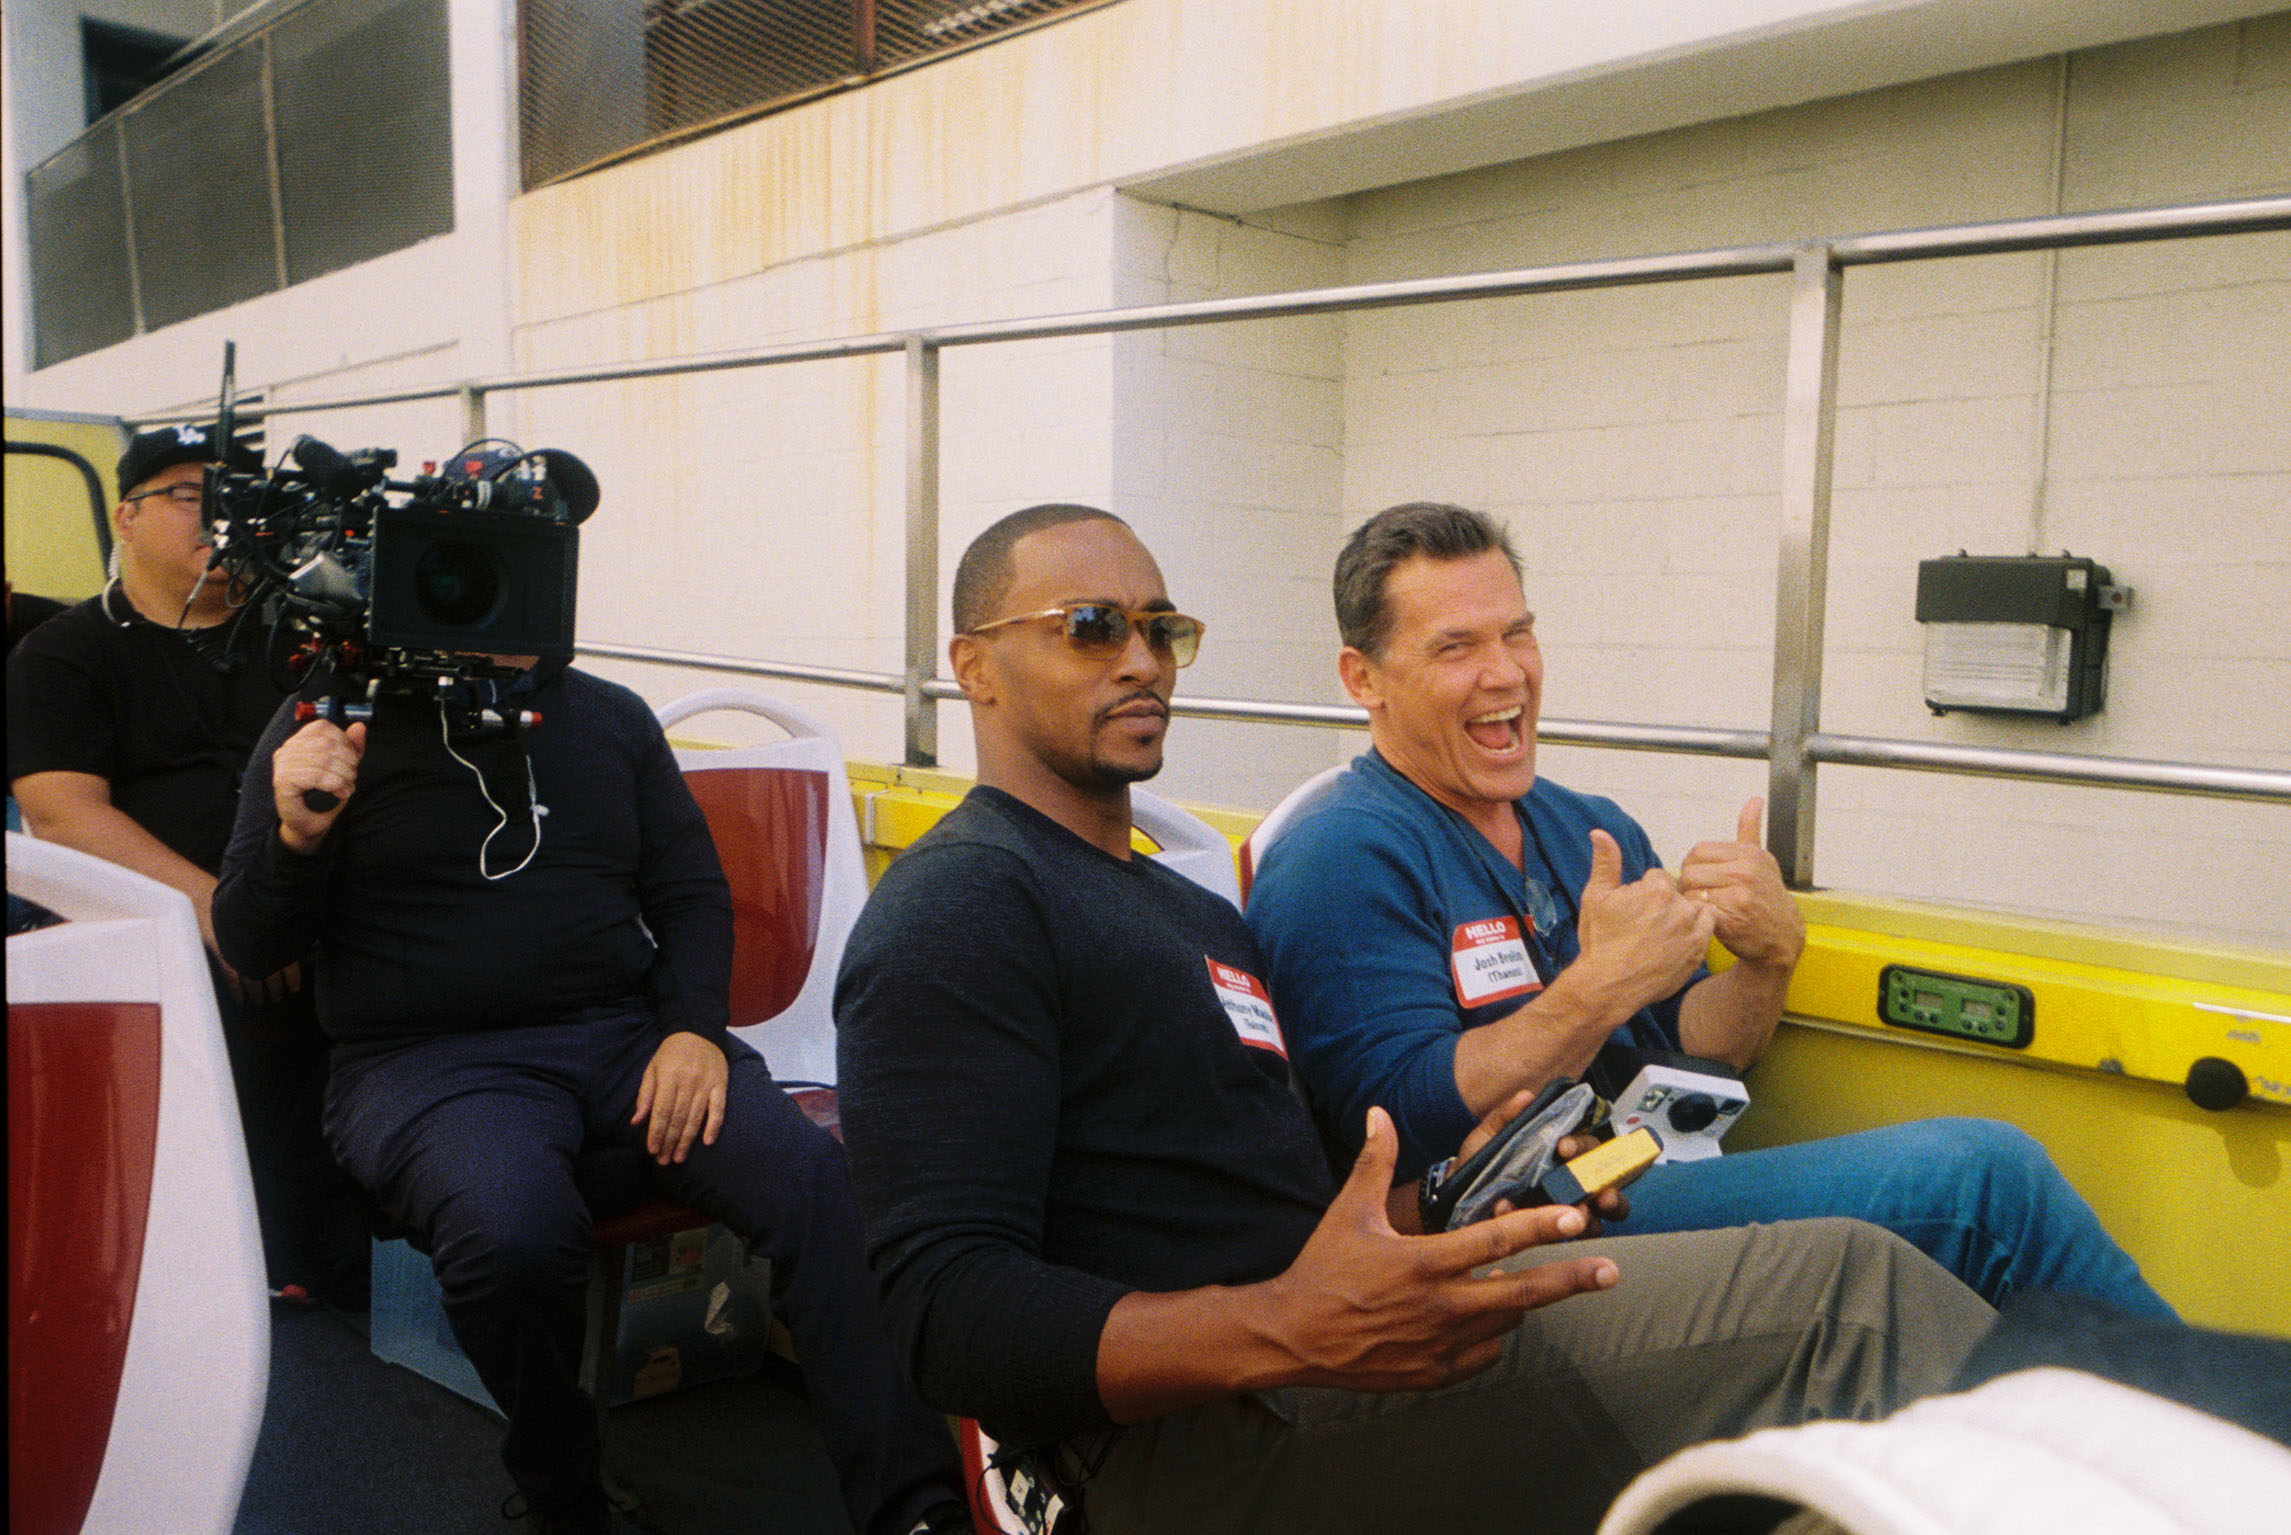 Anthony Mackie and Josh Brolin